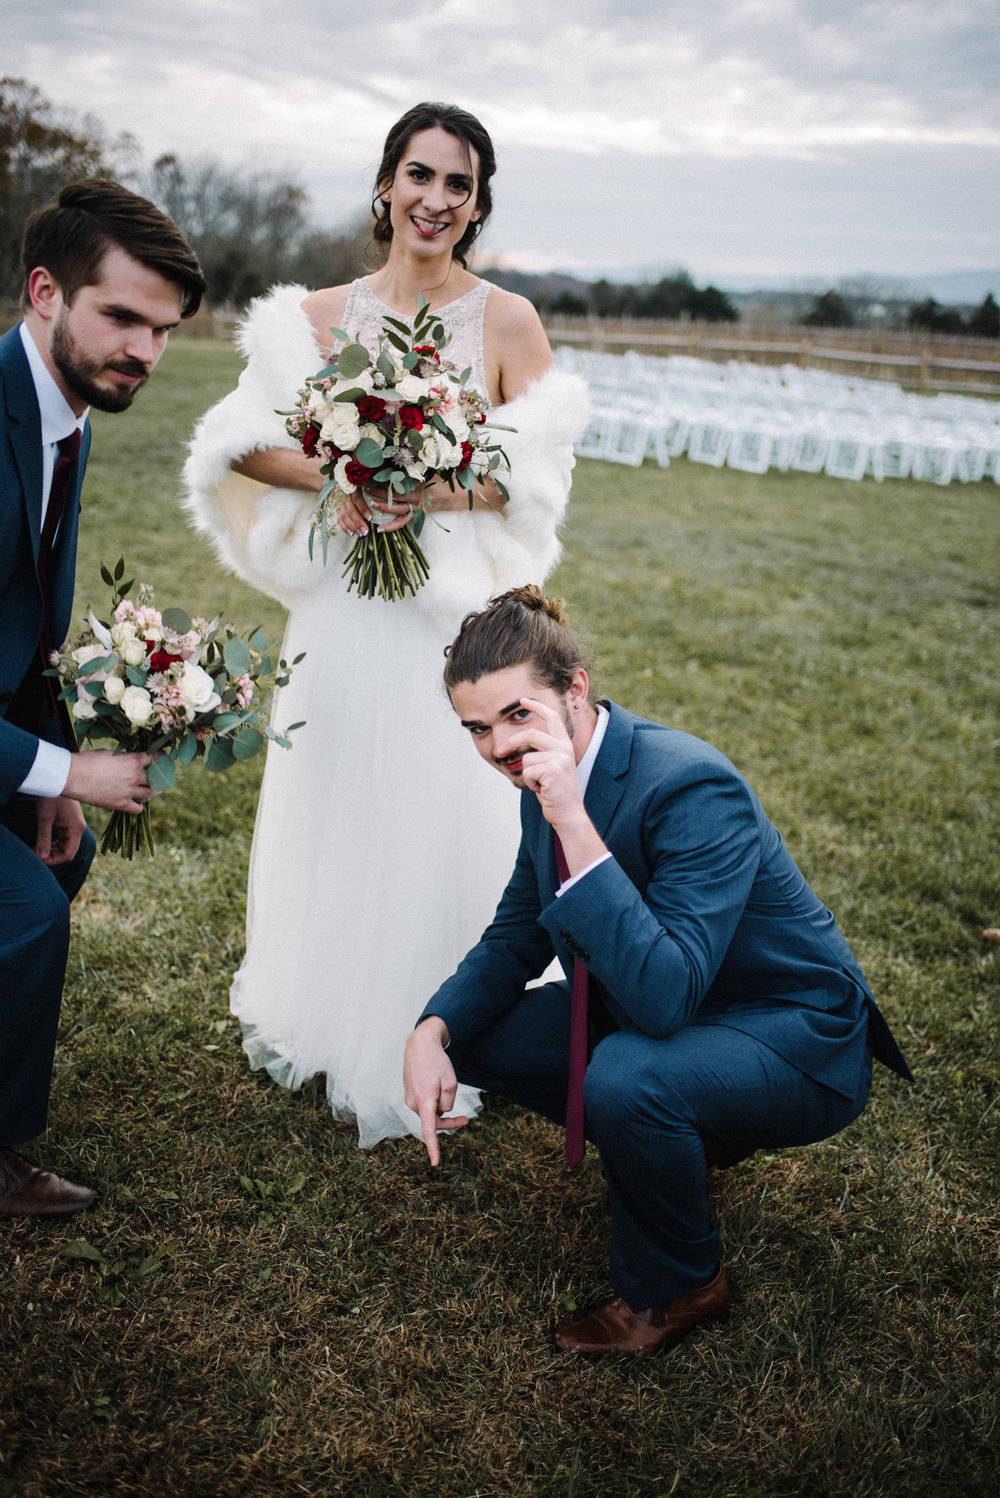 Alyssa and Jesse Winter Vineyard Wedding Luray Virginia Shenandoah Valley Faithbrooke_59.JPG